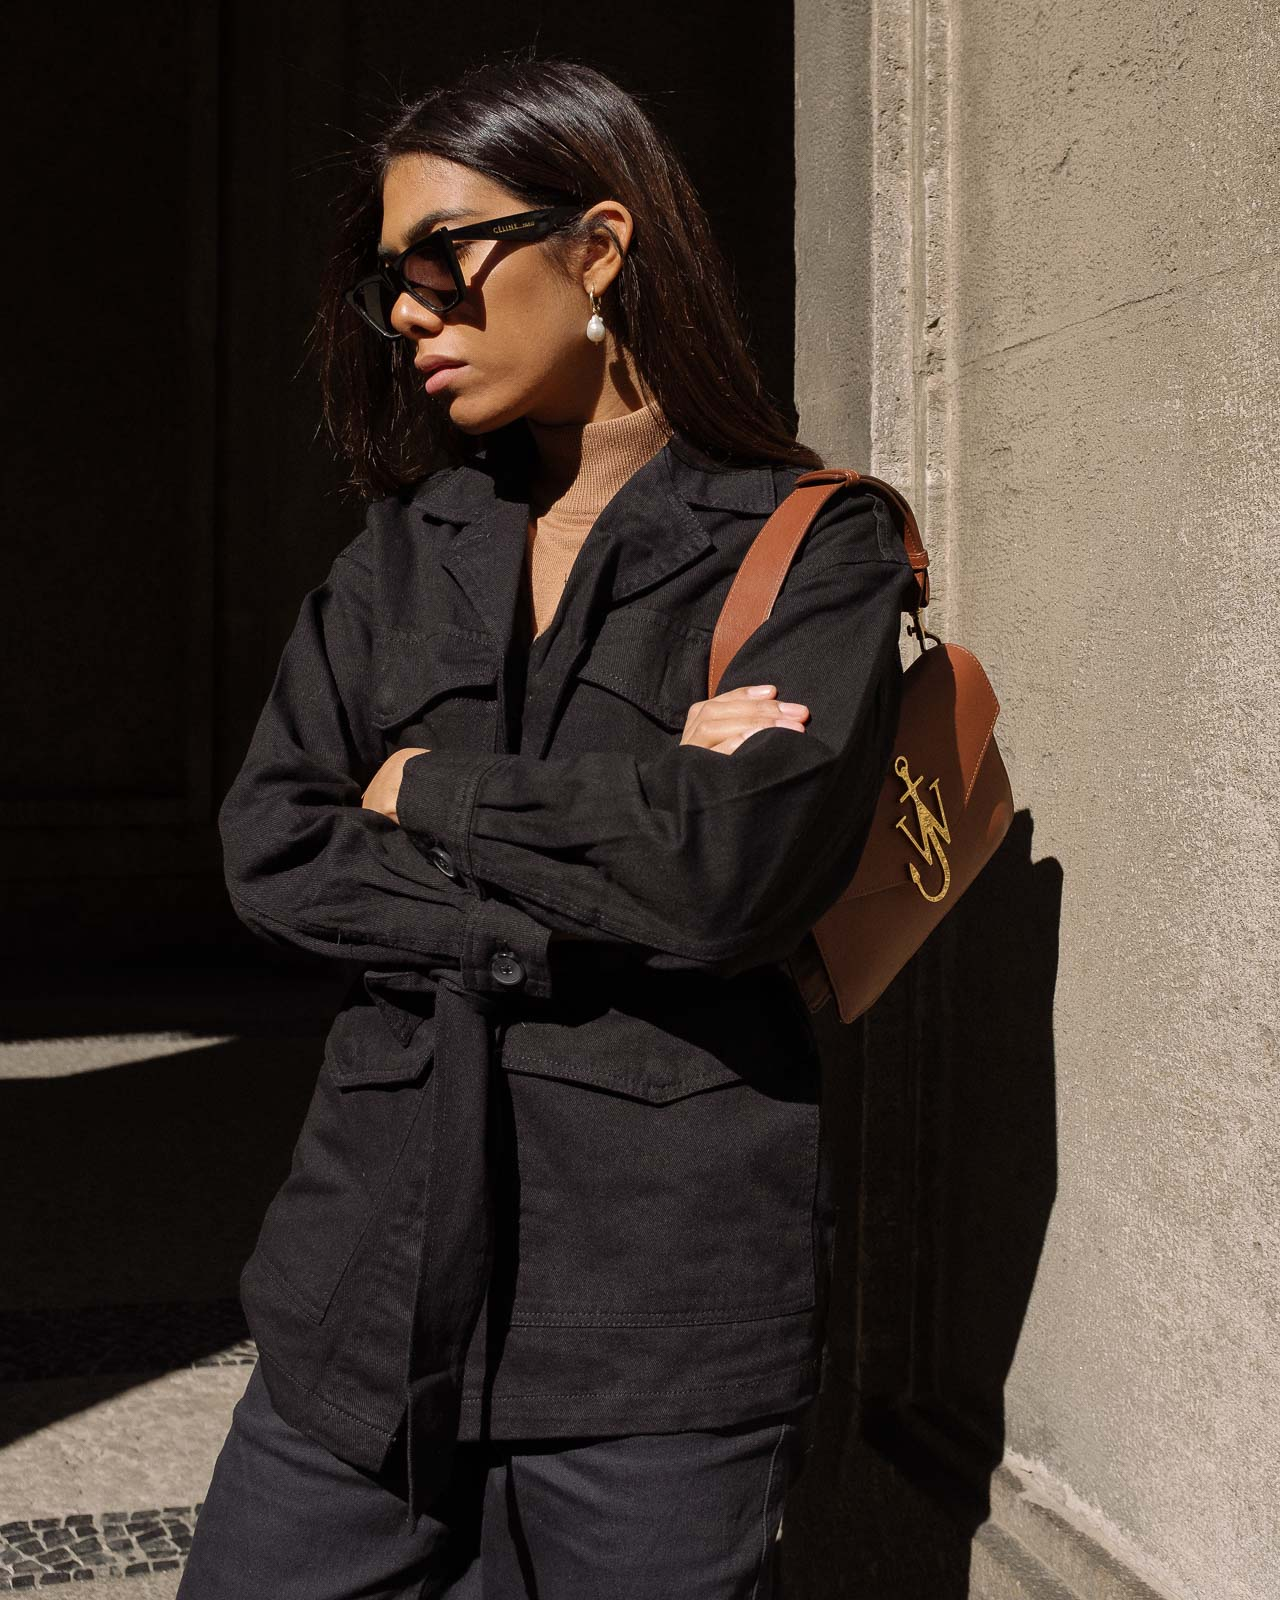 storm wears jw anderson bag with black edited jacket and beige turtleneck with old Céline sunnies and brown ganni boots